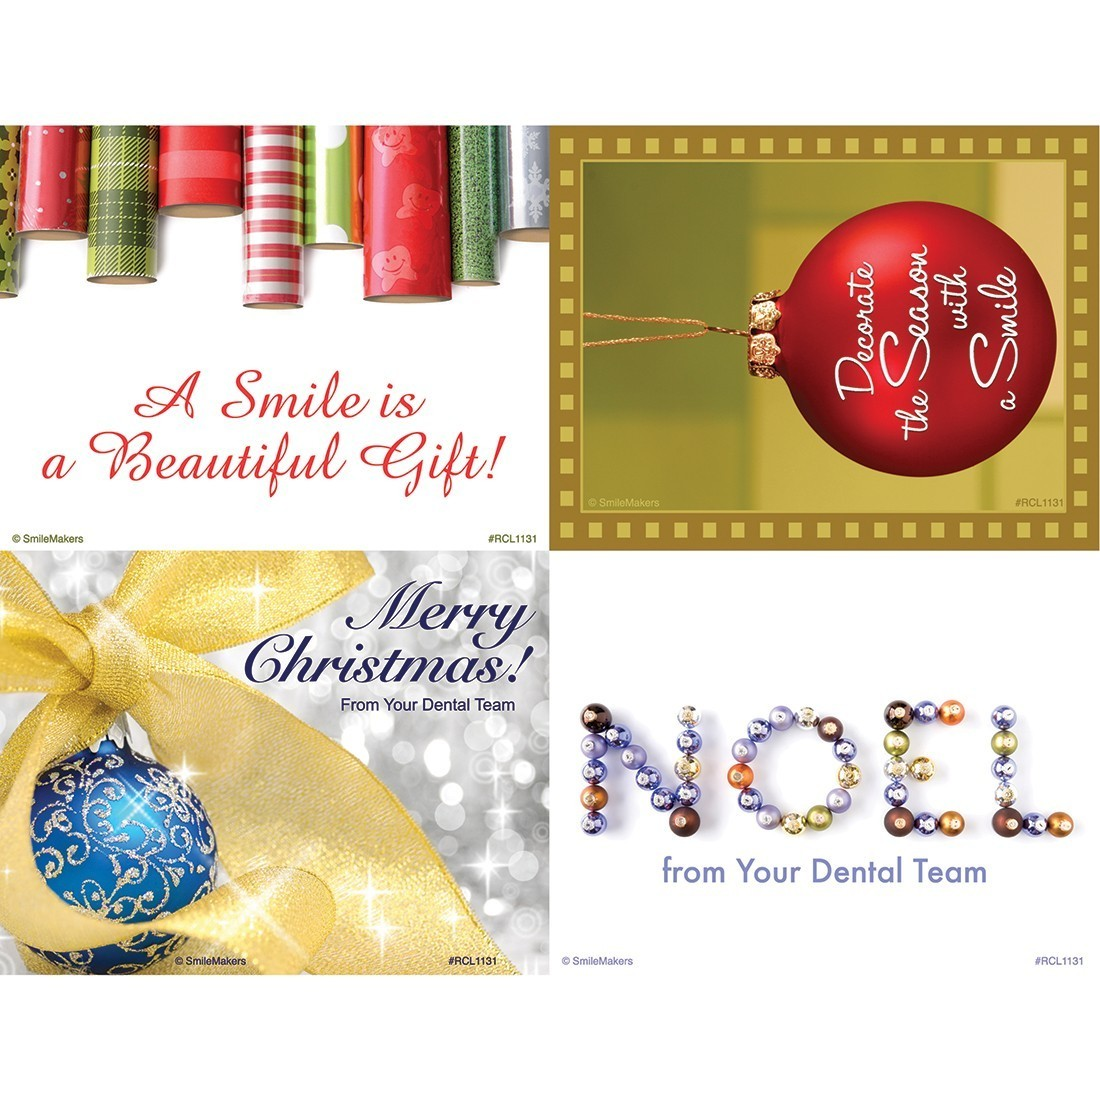 Assorted Christmas Laser Cards [image]